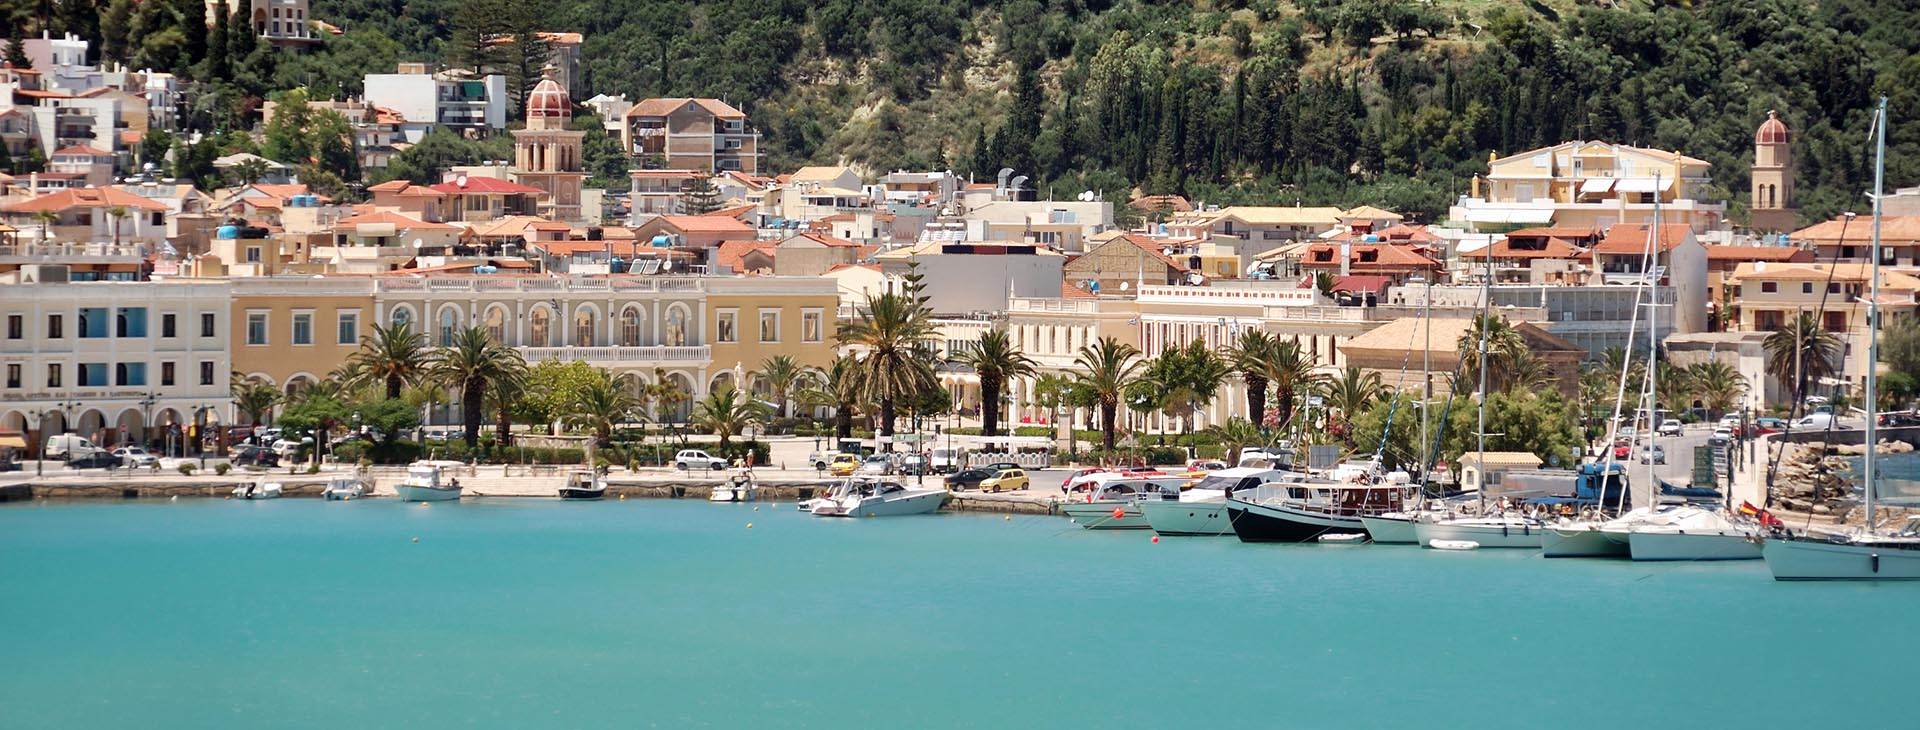 Zakynthos port and town